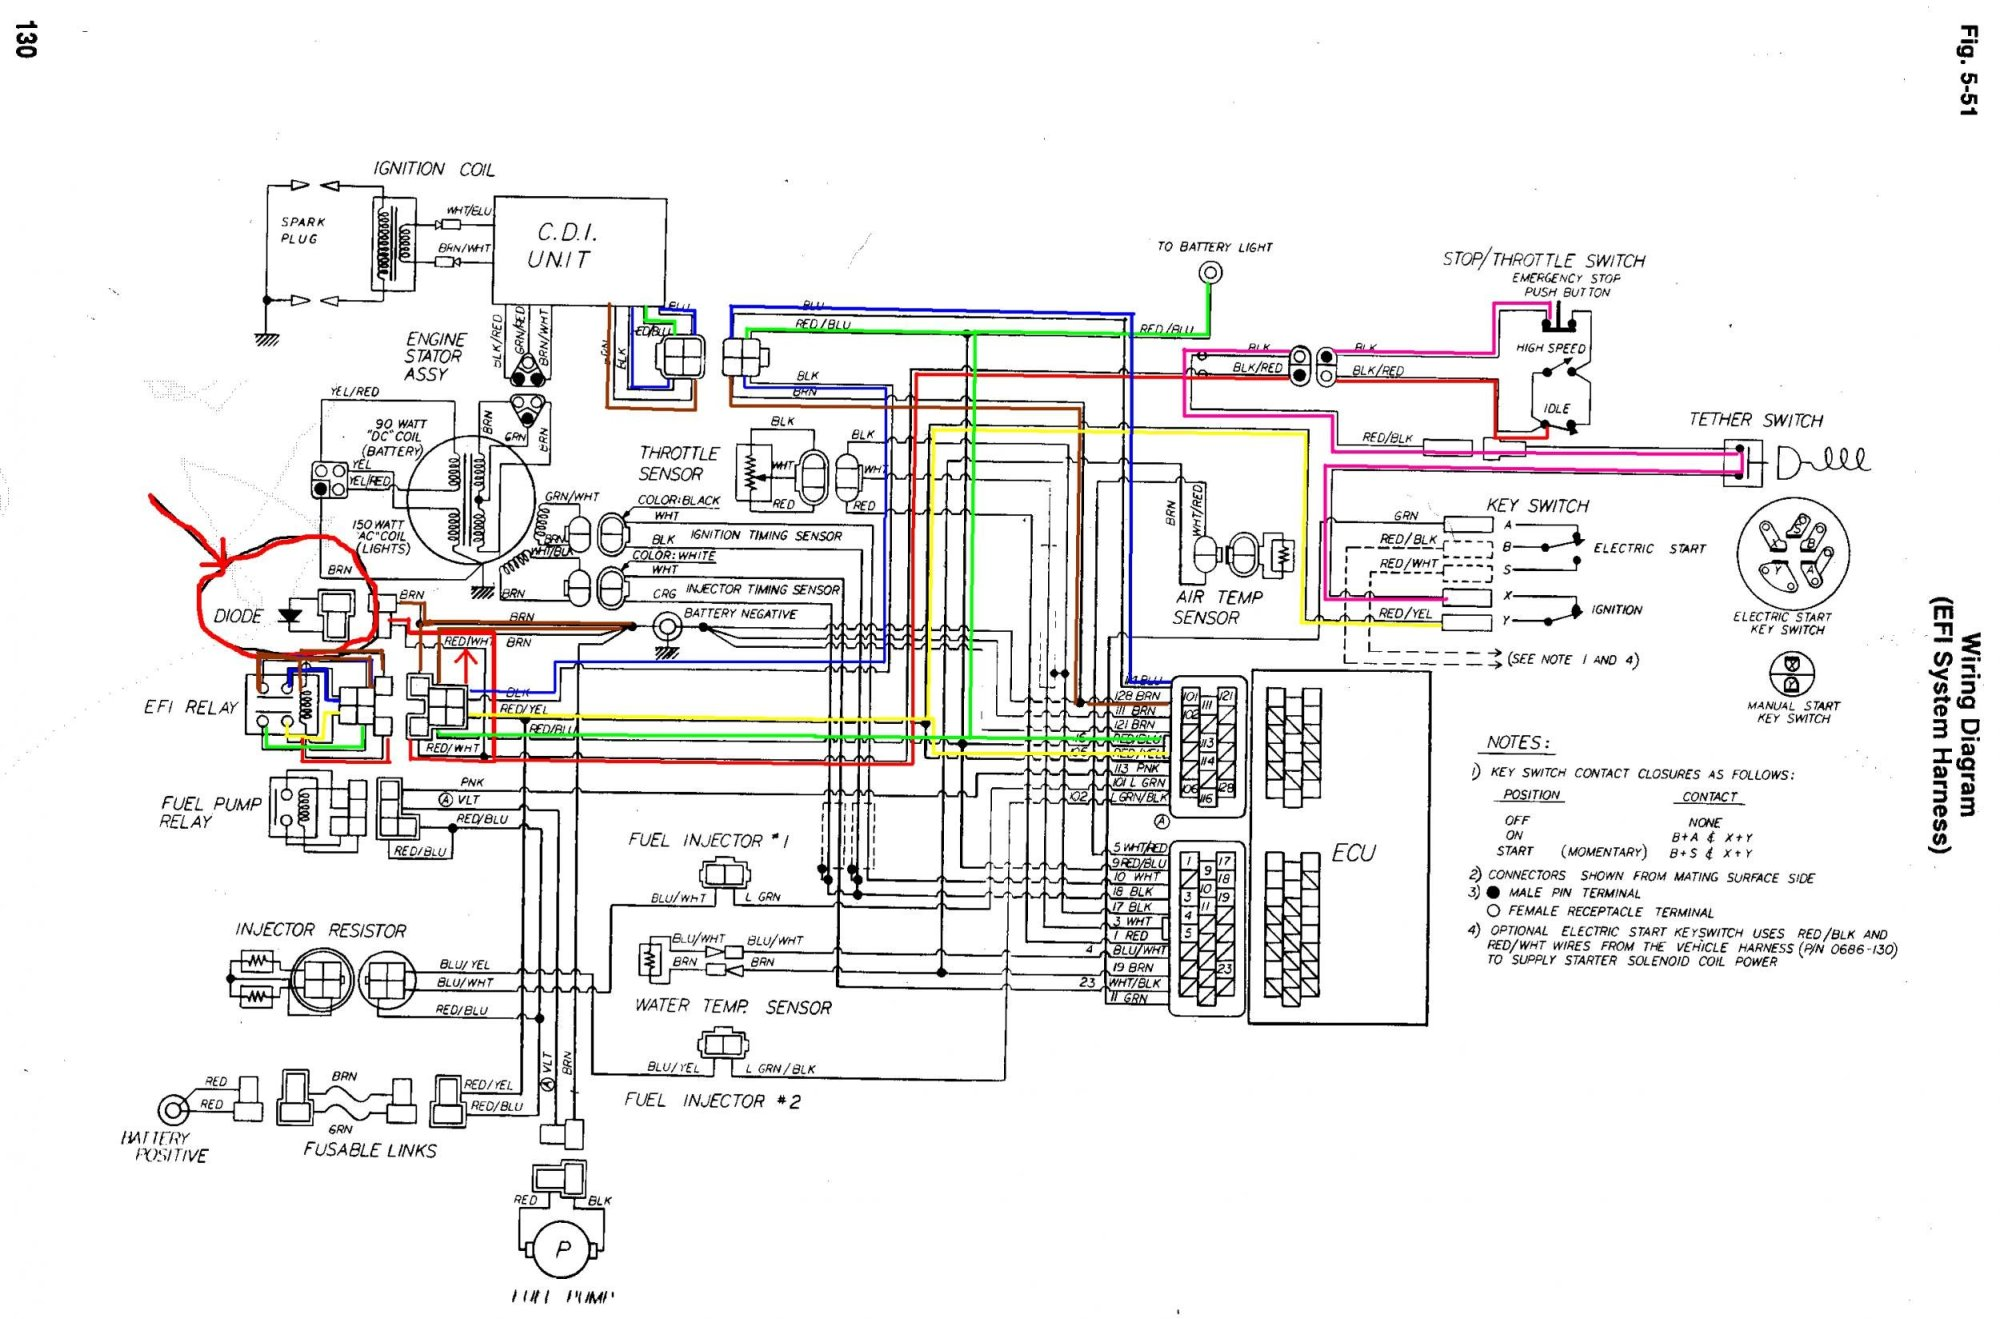 hight resolution of suzuki quadmaster 500 wiring diagram wiring diagram perfomance suzuki quadrunner 500 wiring diagram suzuki quadmaster 500 wiring diagram